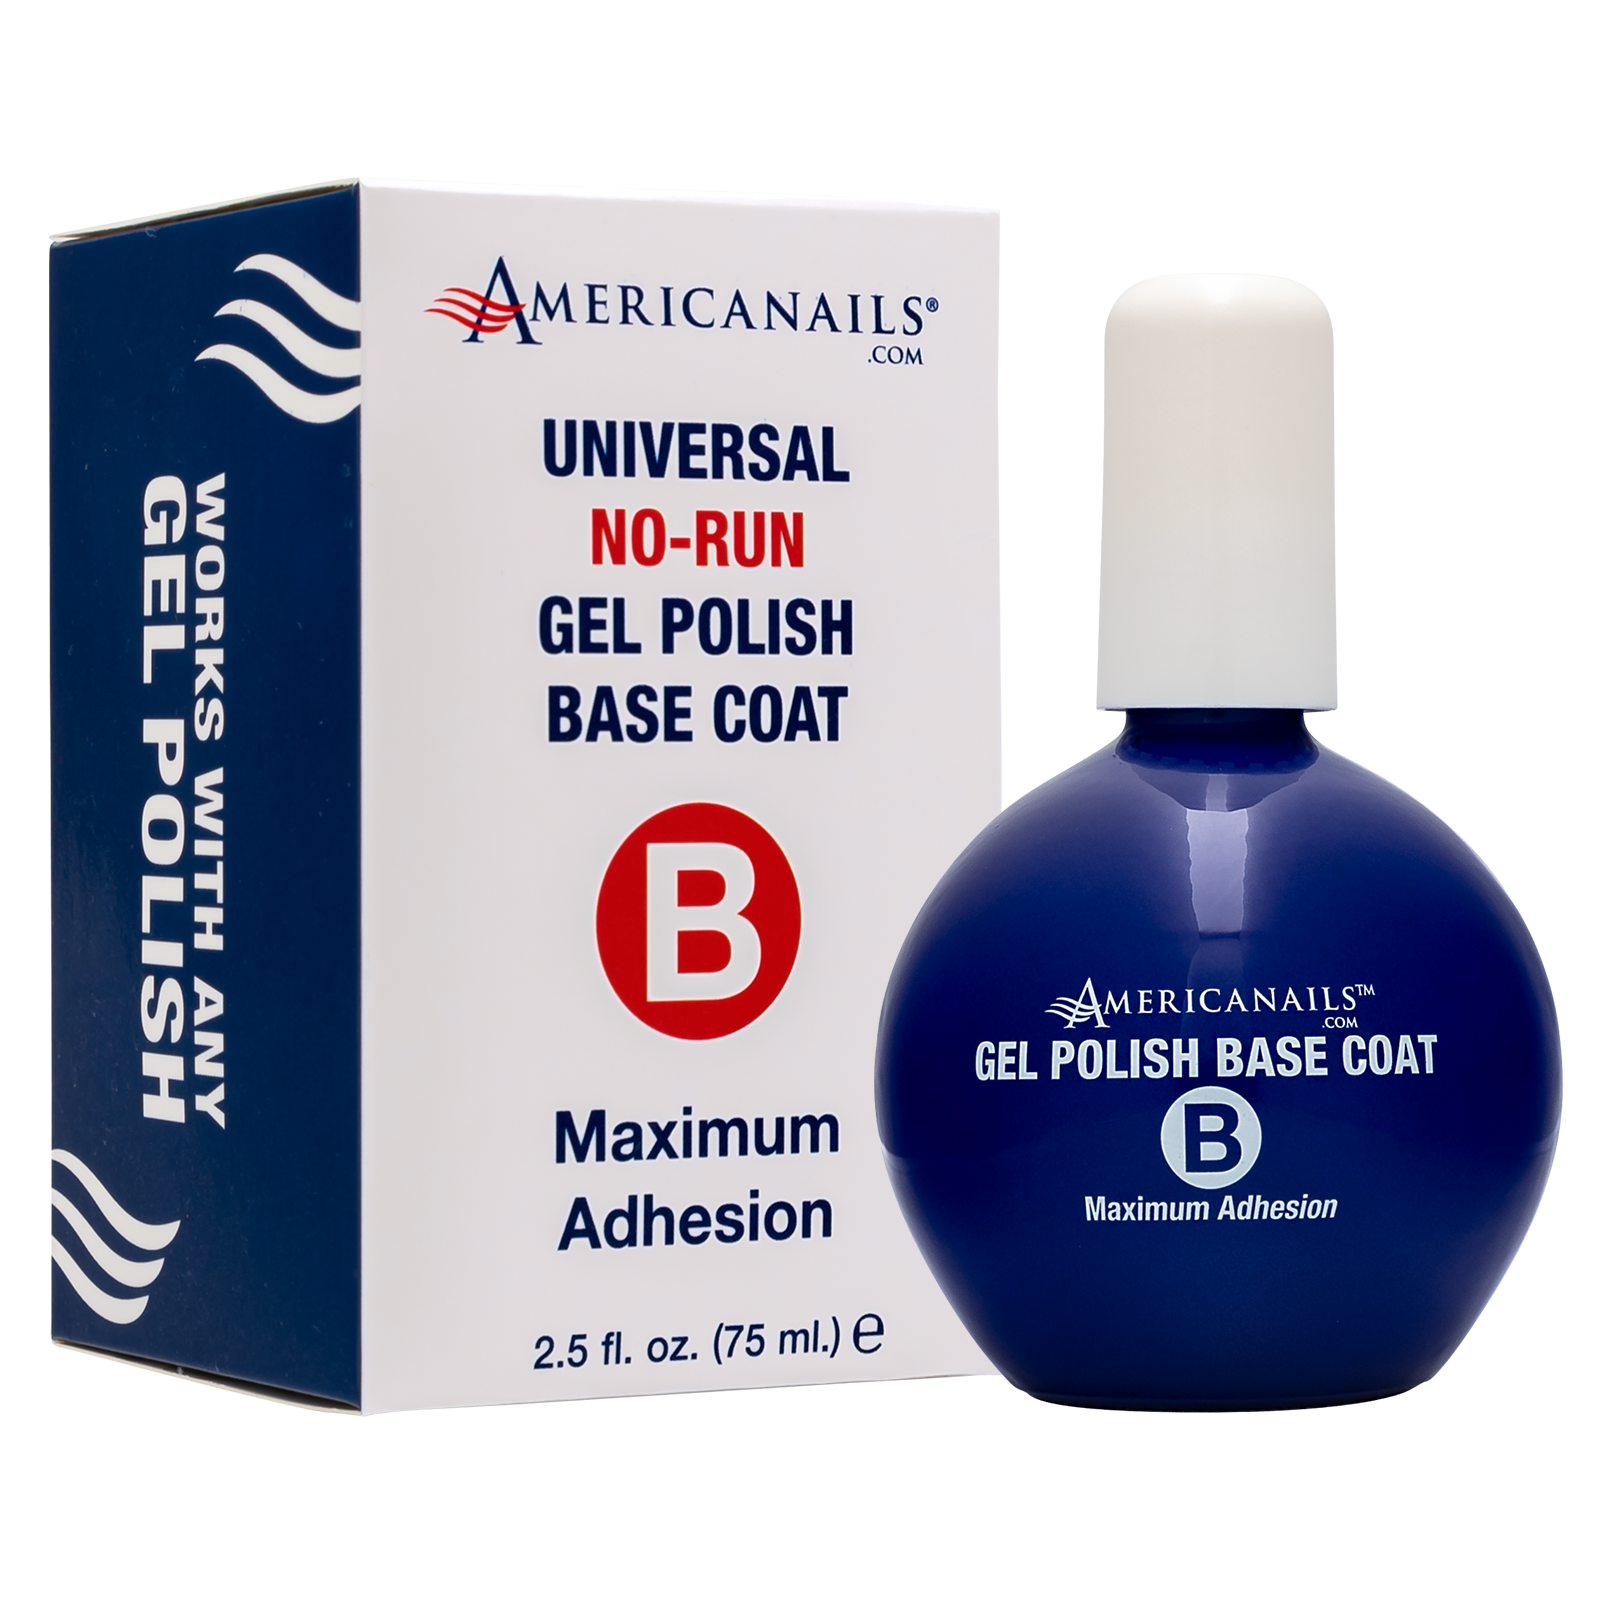 Americanails No-Run Gel Polish Base Coat Pro Size (2.5oz)